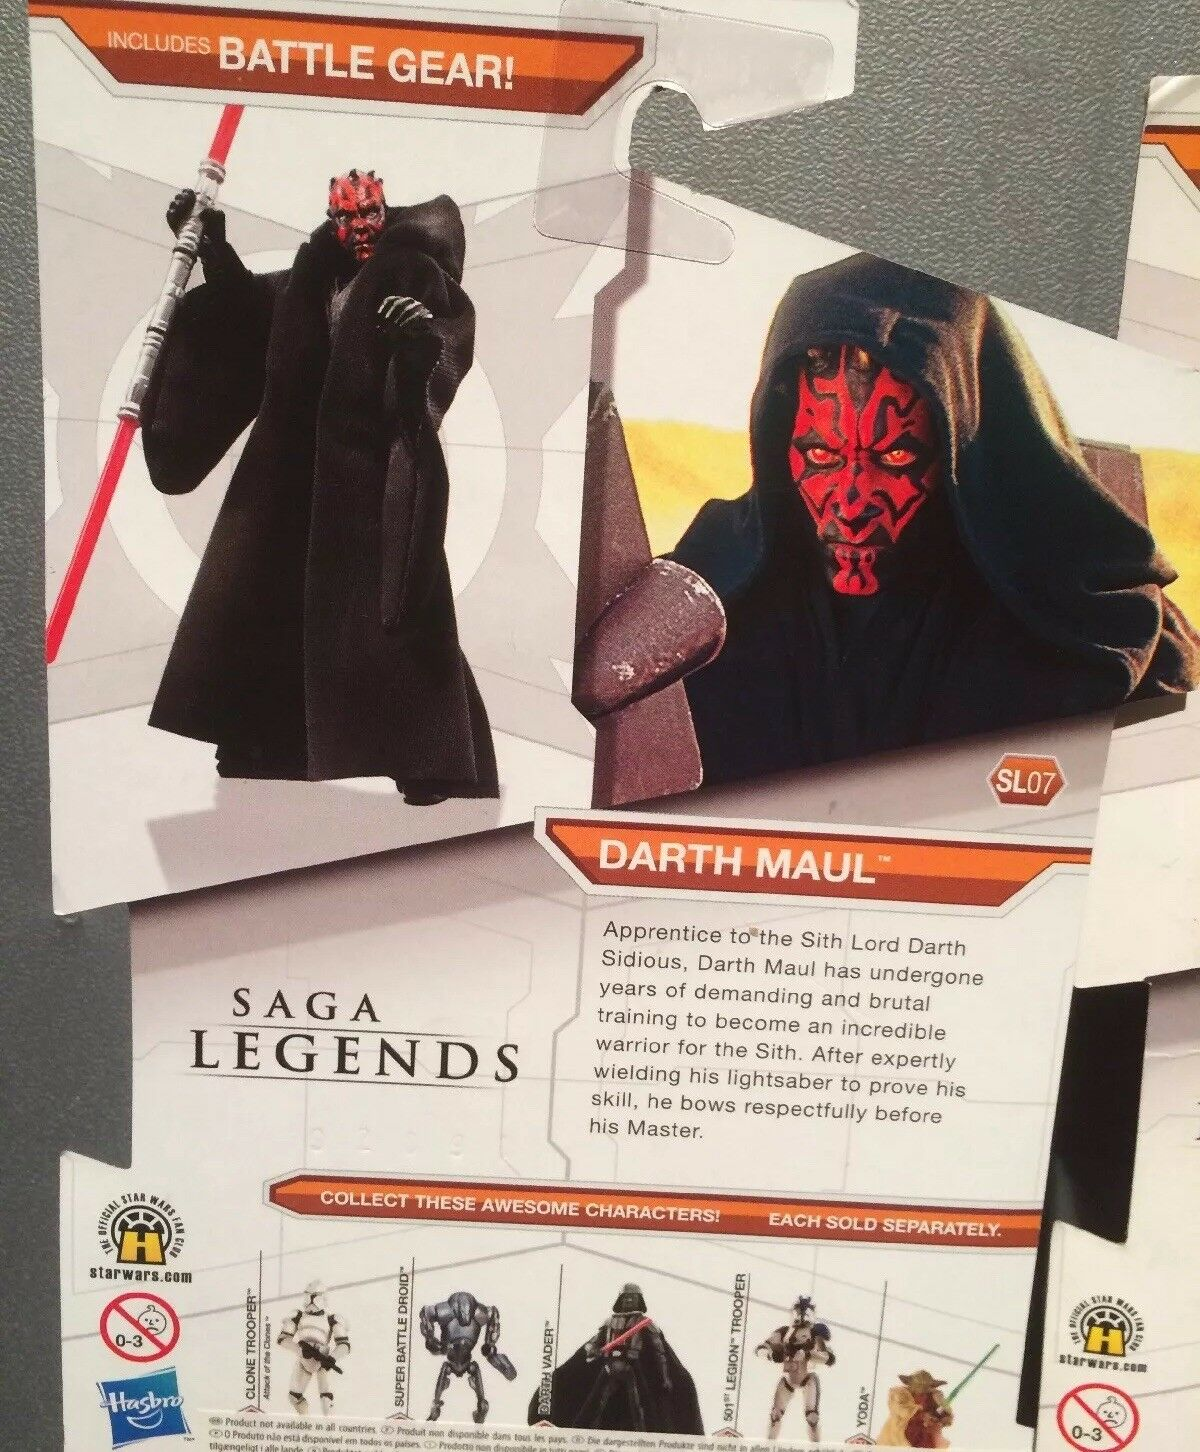 2009 2 x Star Wars Legacy Saga Collection - - - Darth Vader vs  Darth Maul ⭐️BNIB ⭐️ 933165